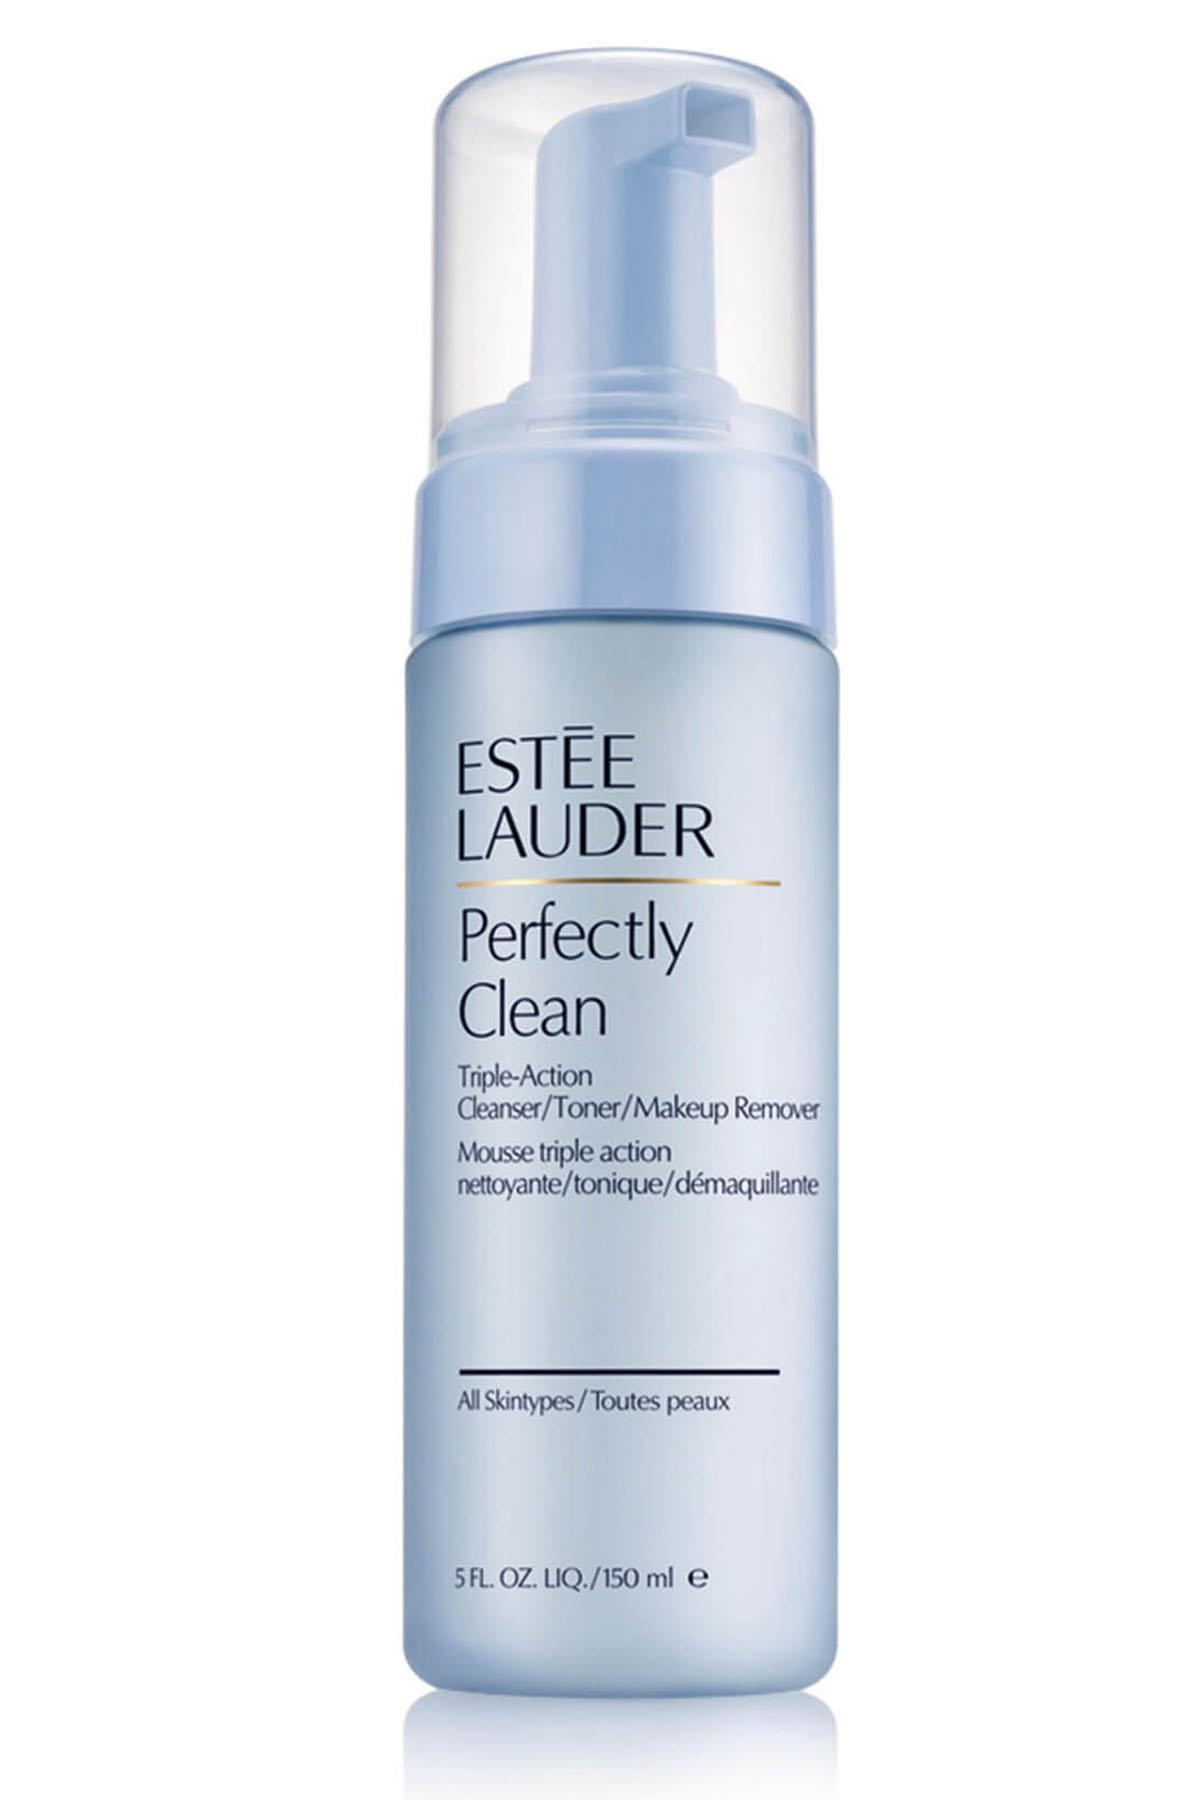 Estee Lauder Perfectly Clean Triple-Action 150 ML